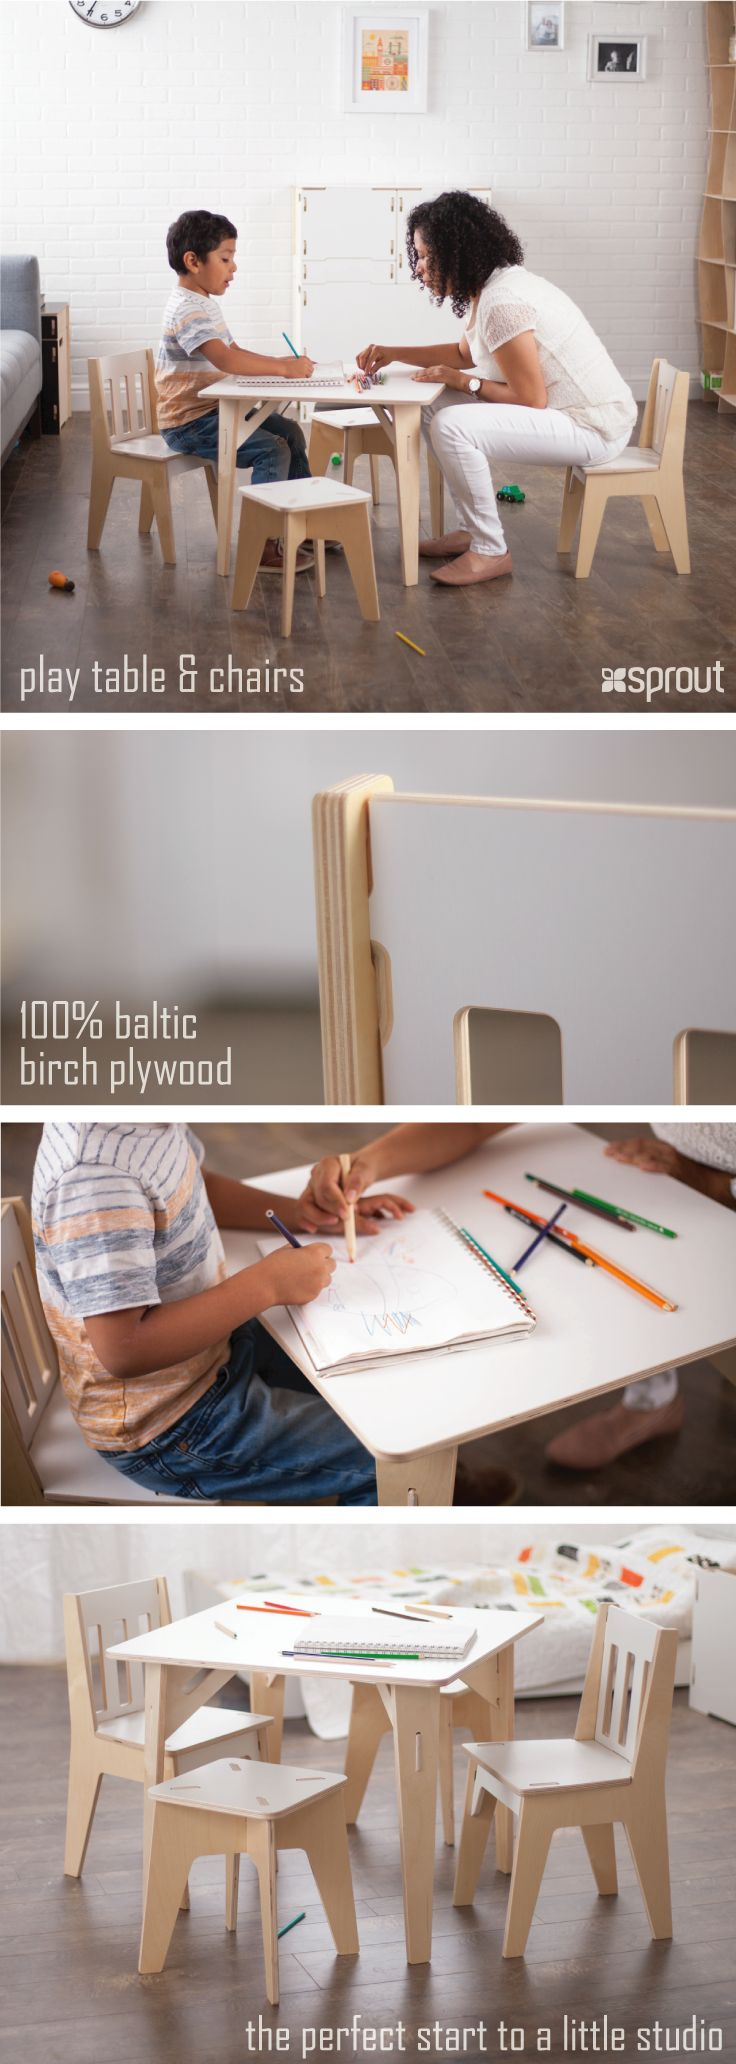 Best 20 Toddler table and chairs ideas on Pinterest Toddler